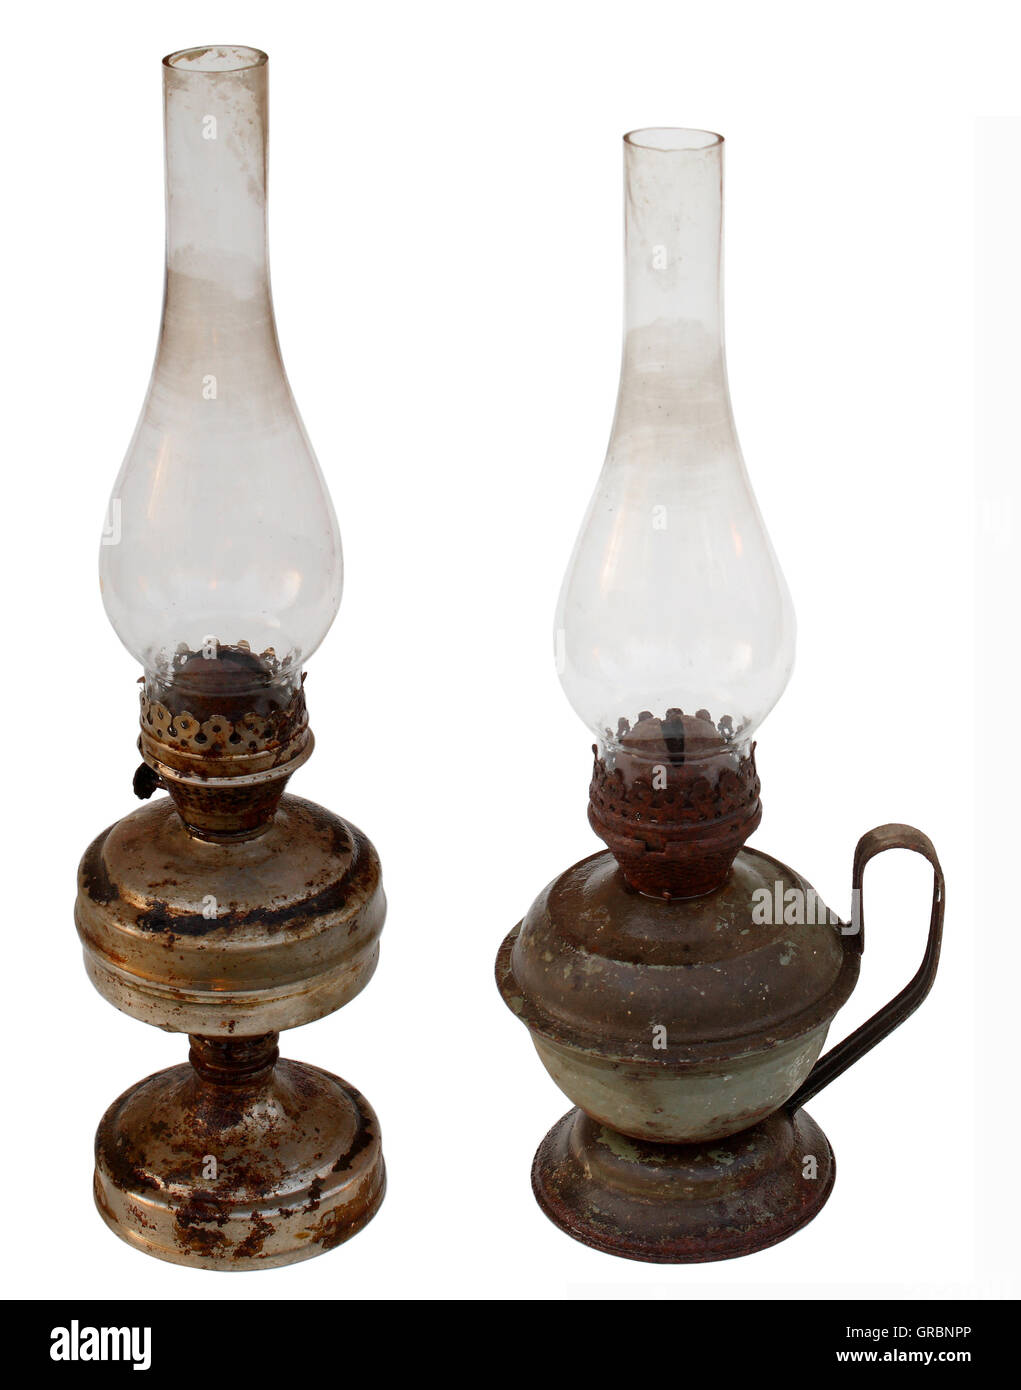 antique kerosene lamp with a glass bulb old - Stock Image